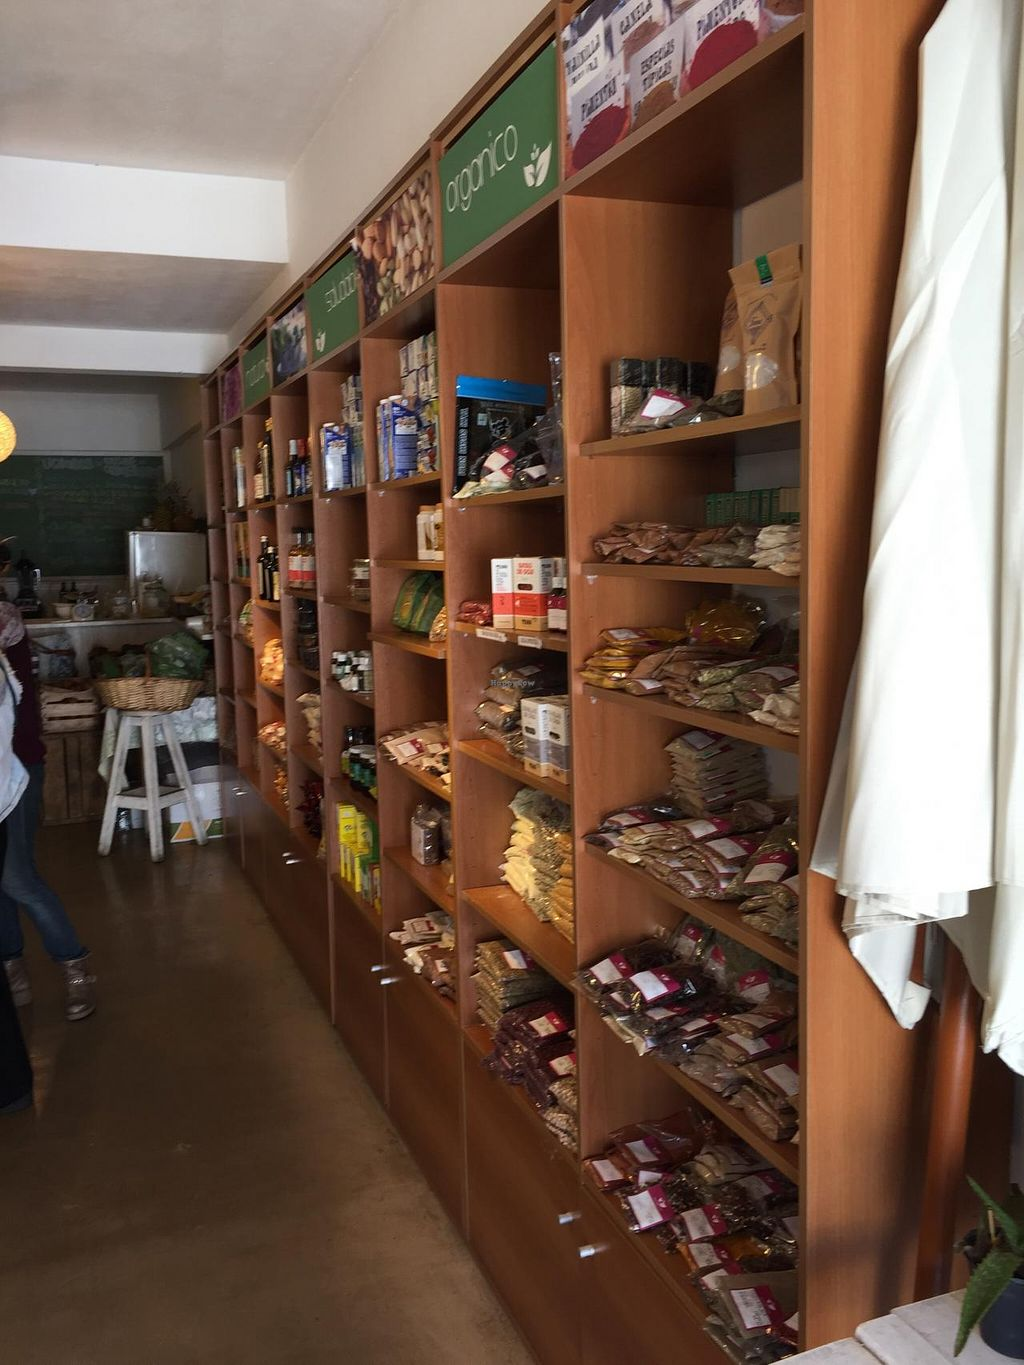 """Photo of Mercado Verde  by <a href=""""/members/profile/cuckooworld"""">cuckooworld</a> <br/>Many more organic products <br/> February 20, 2015  - <a href='/contact/abuse/image/44537/93594'>Report</a>"""